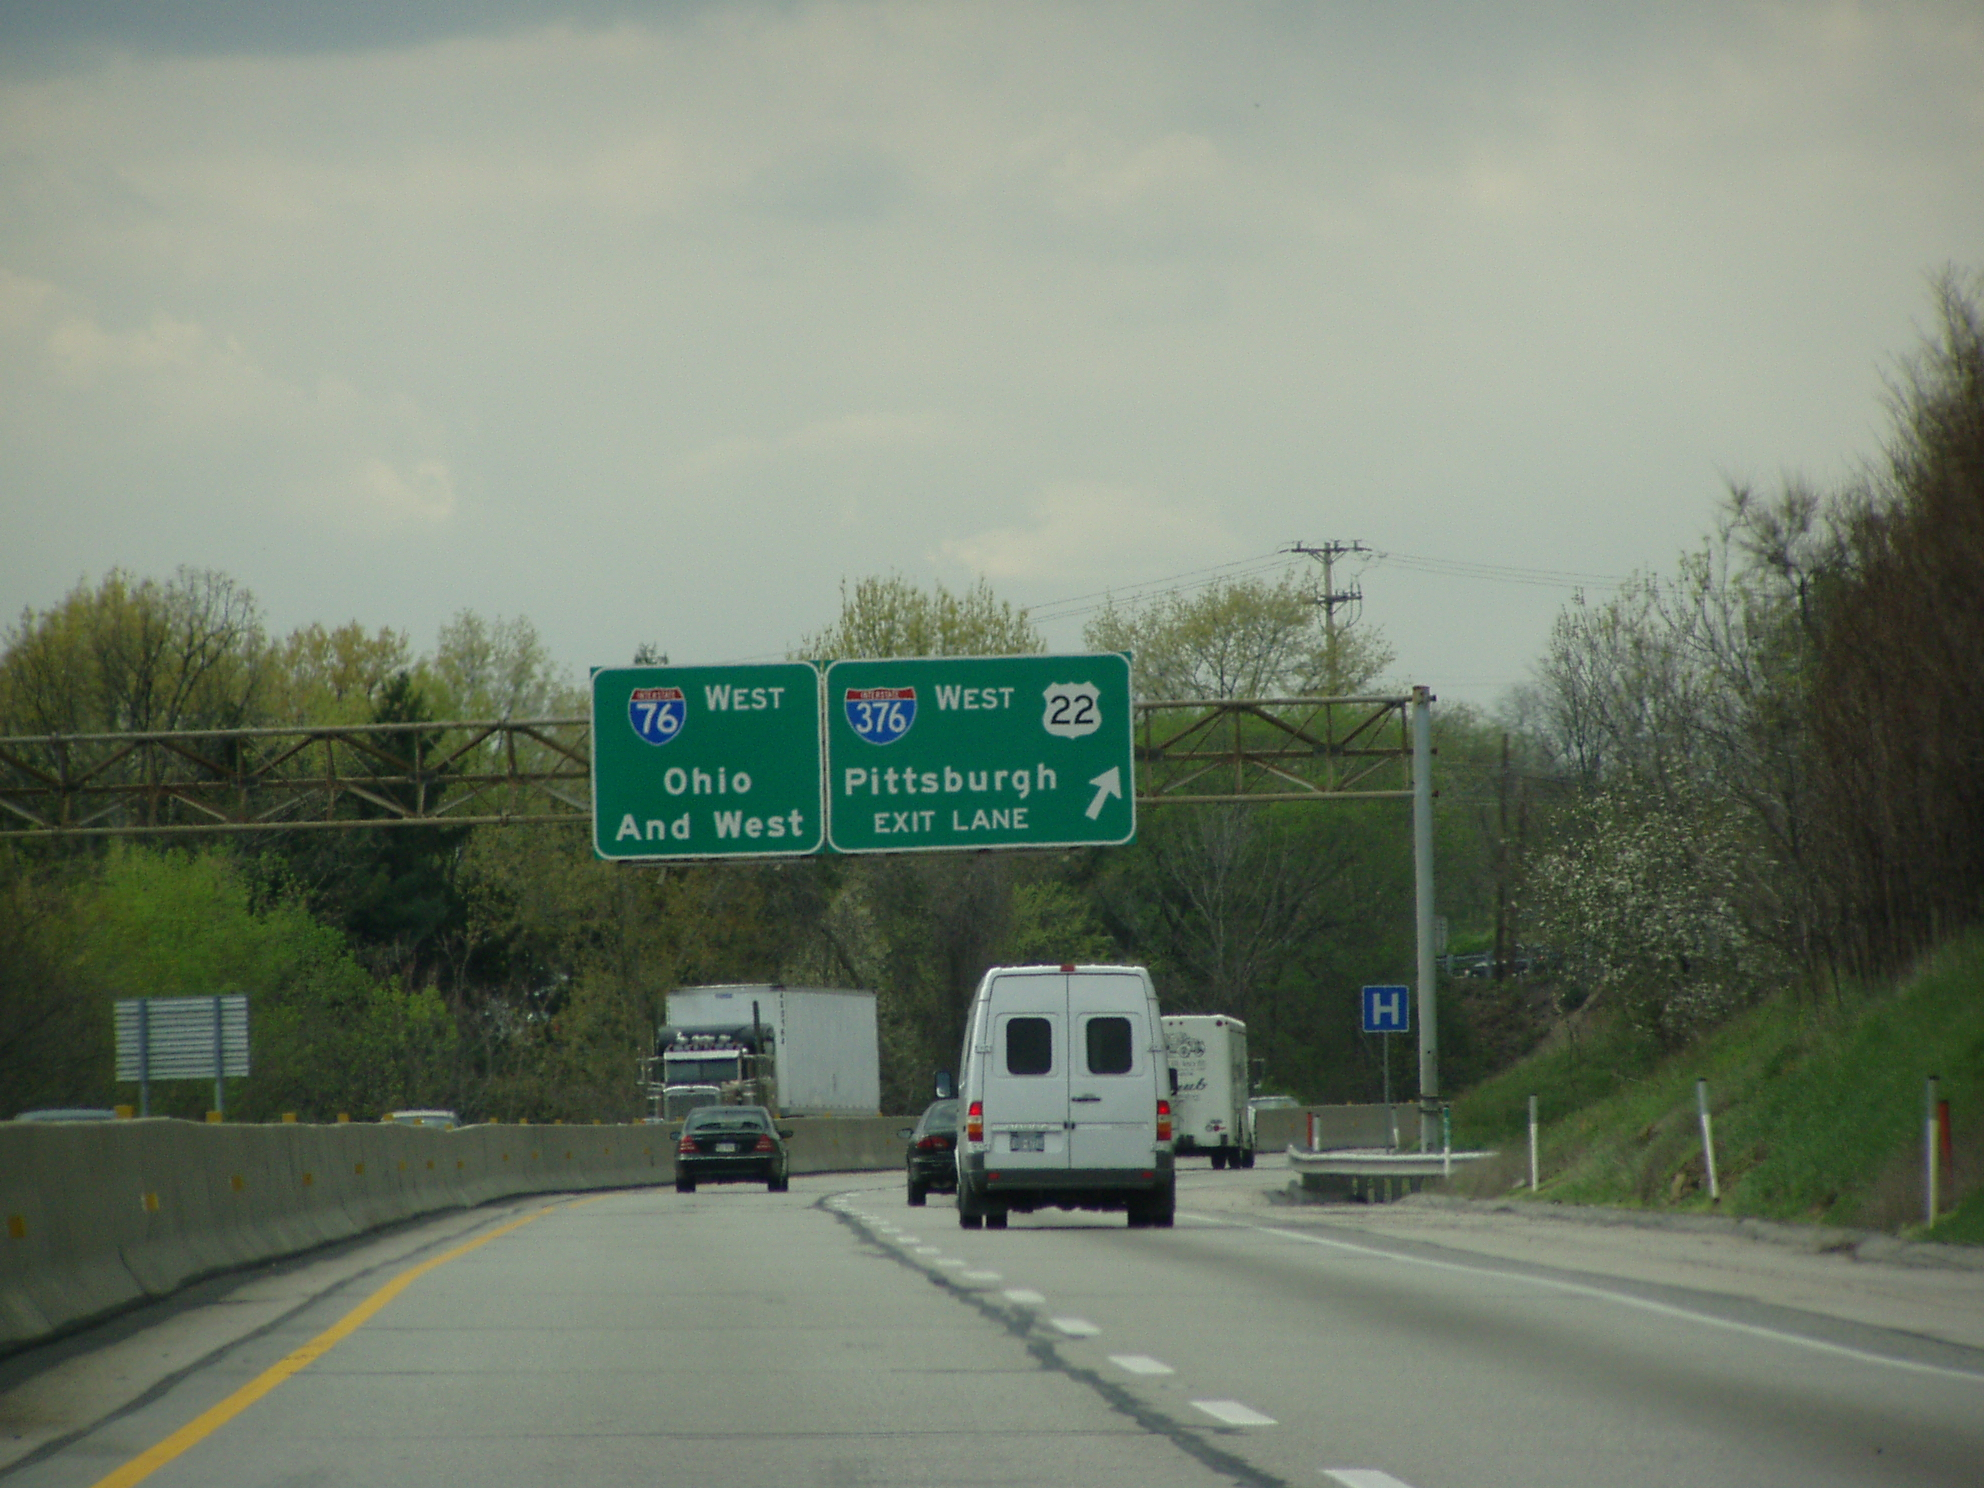 Unusual Destinations On Highway Signs